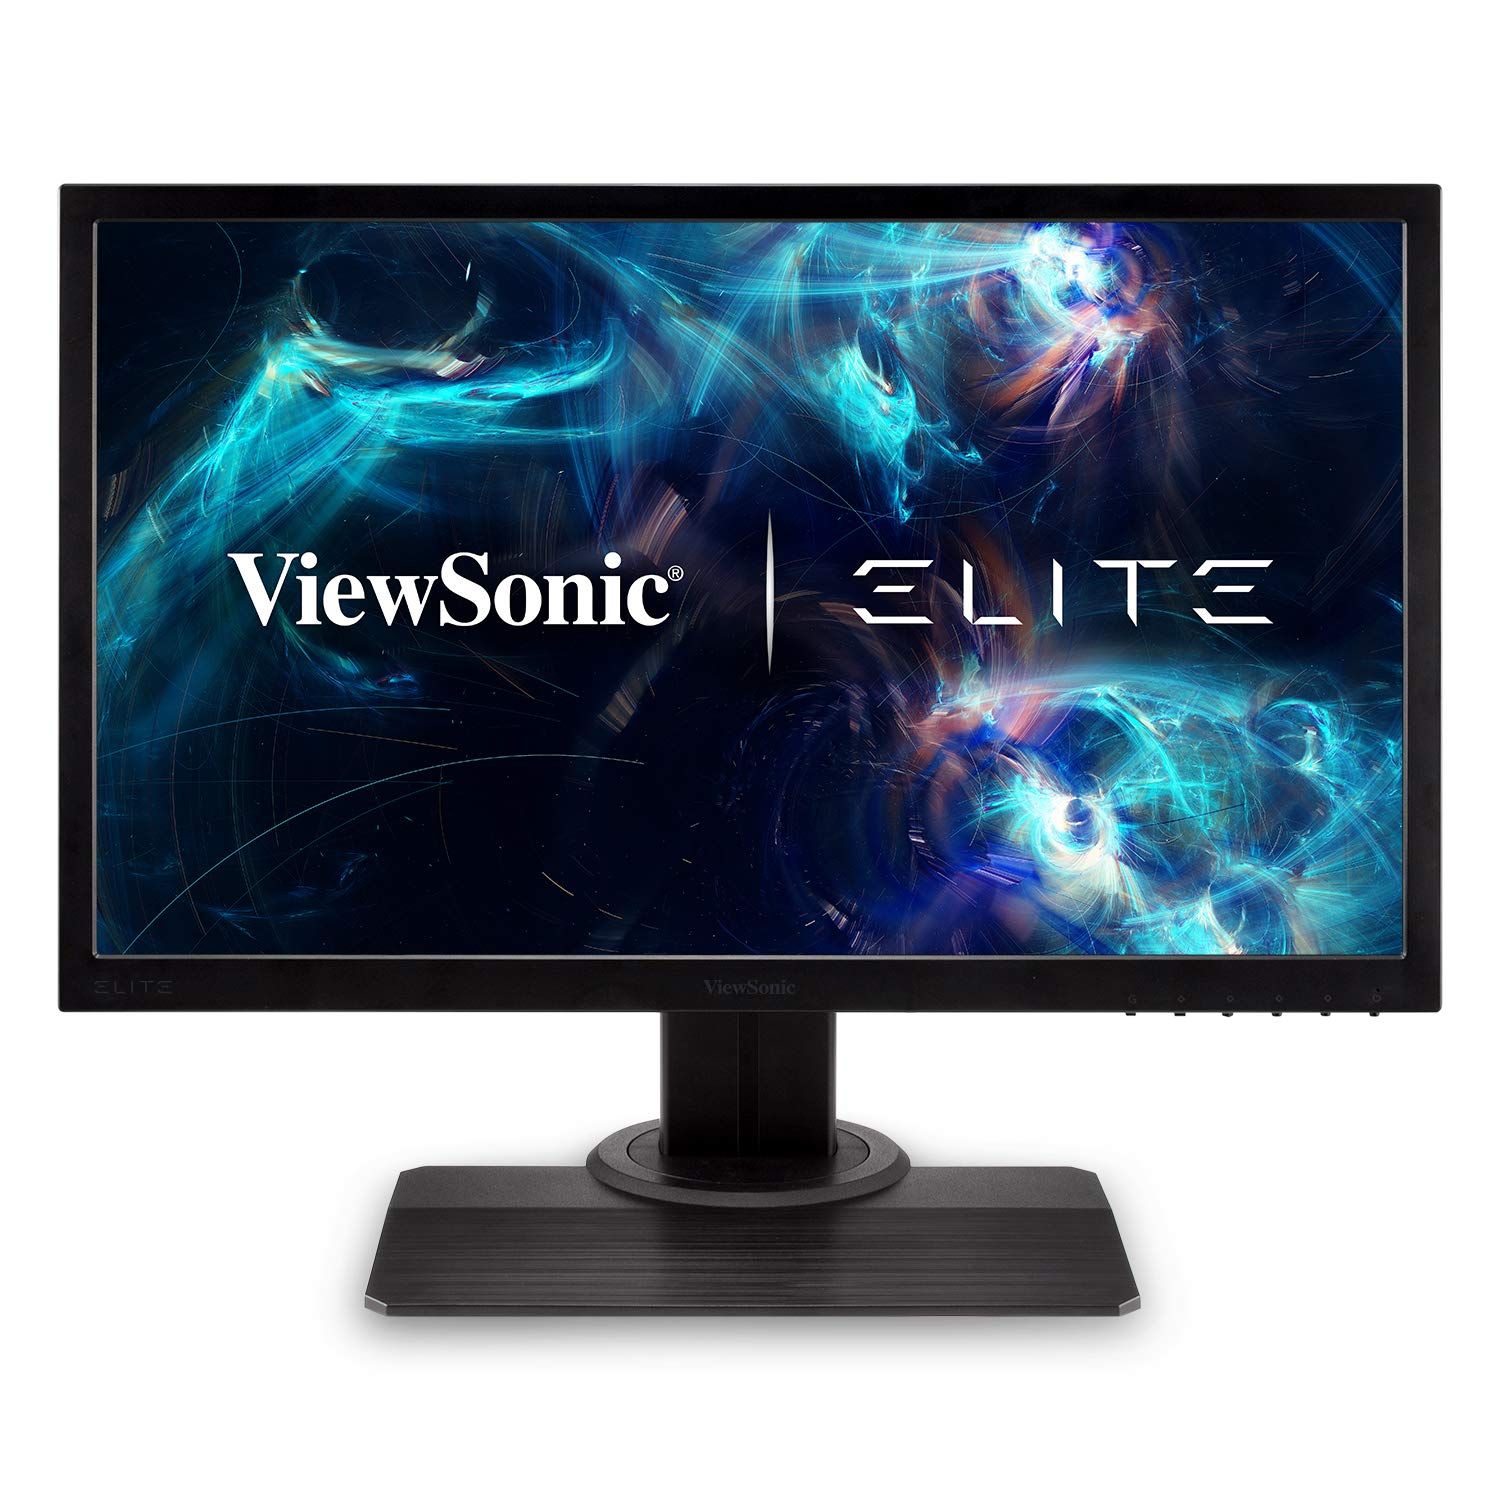 ViewSonic XG2402 24 Inch 1080p 1ms 144 Hz Gaming Monitor with FreeSync Eye Care Advanced Ergonomics ColorX Mode HDMI and DP for eSport